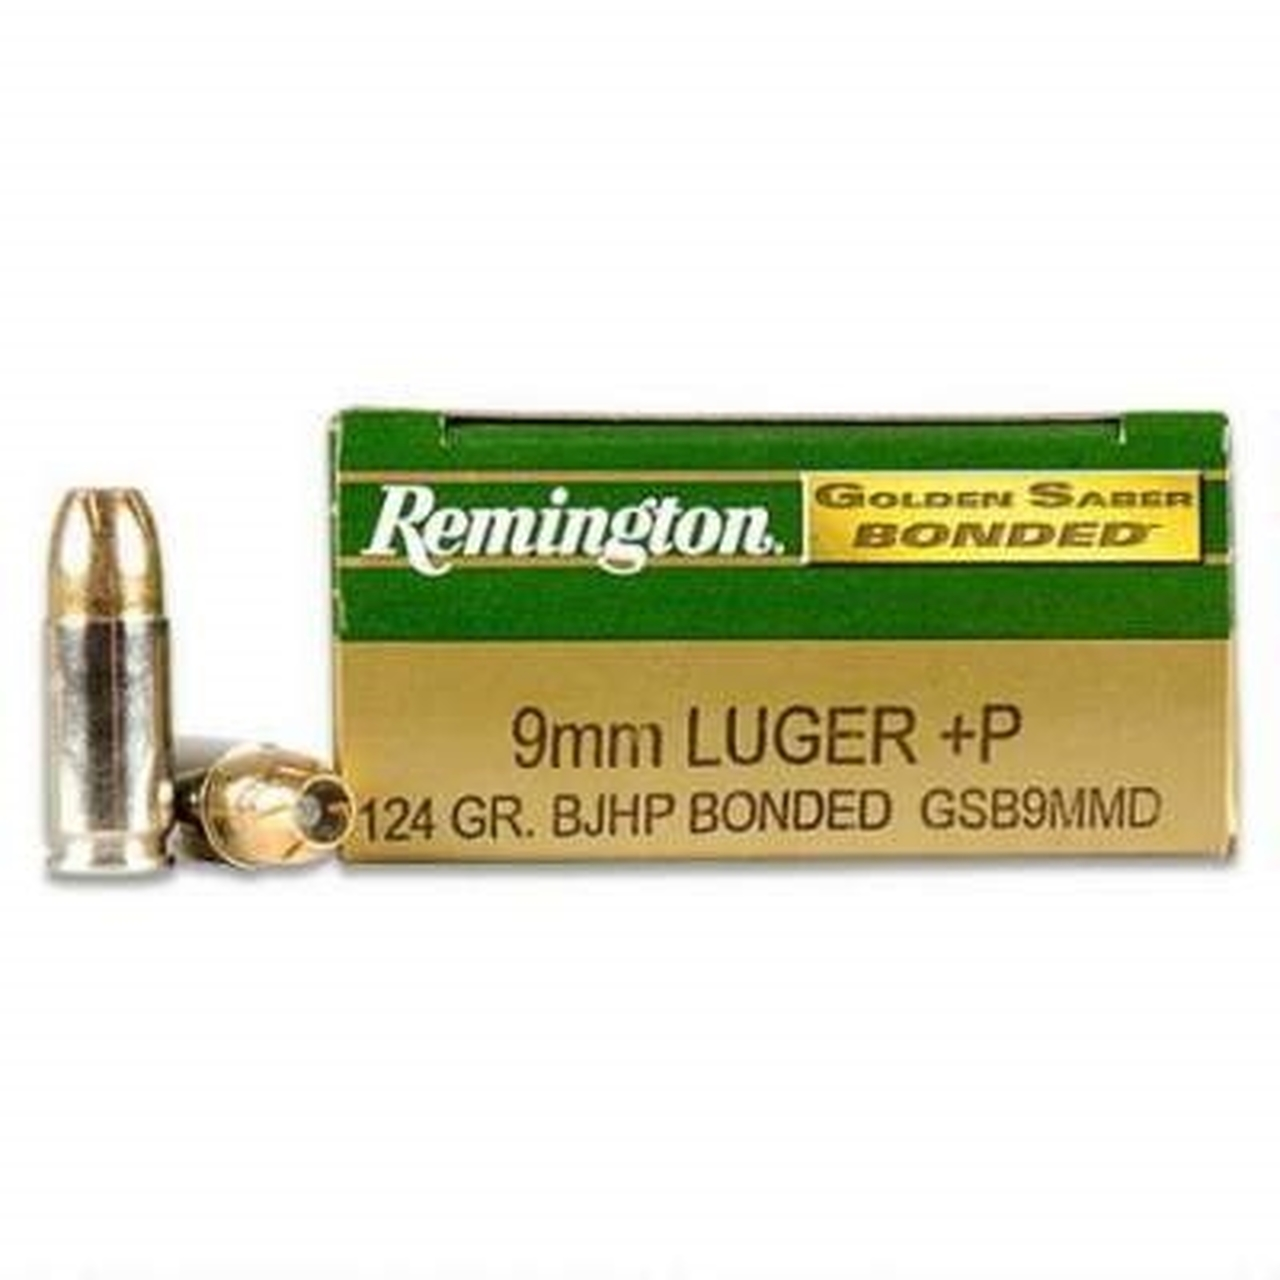 Remington GSB9MMD 9mm 124gr Bonded Ammunition, 10-50rd Boxes, 500rd Case-Remington